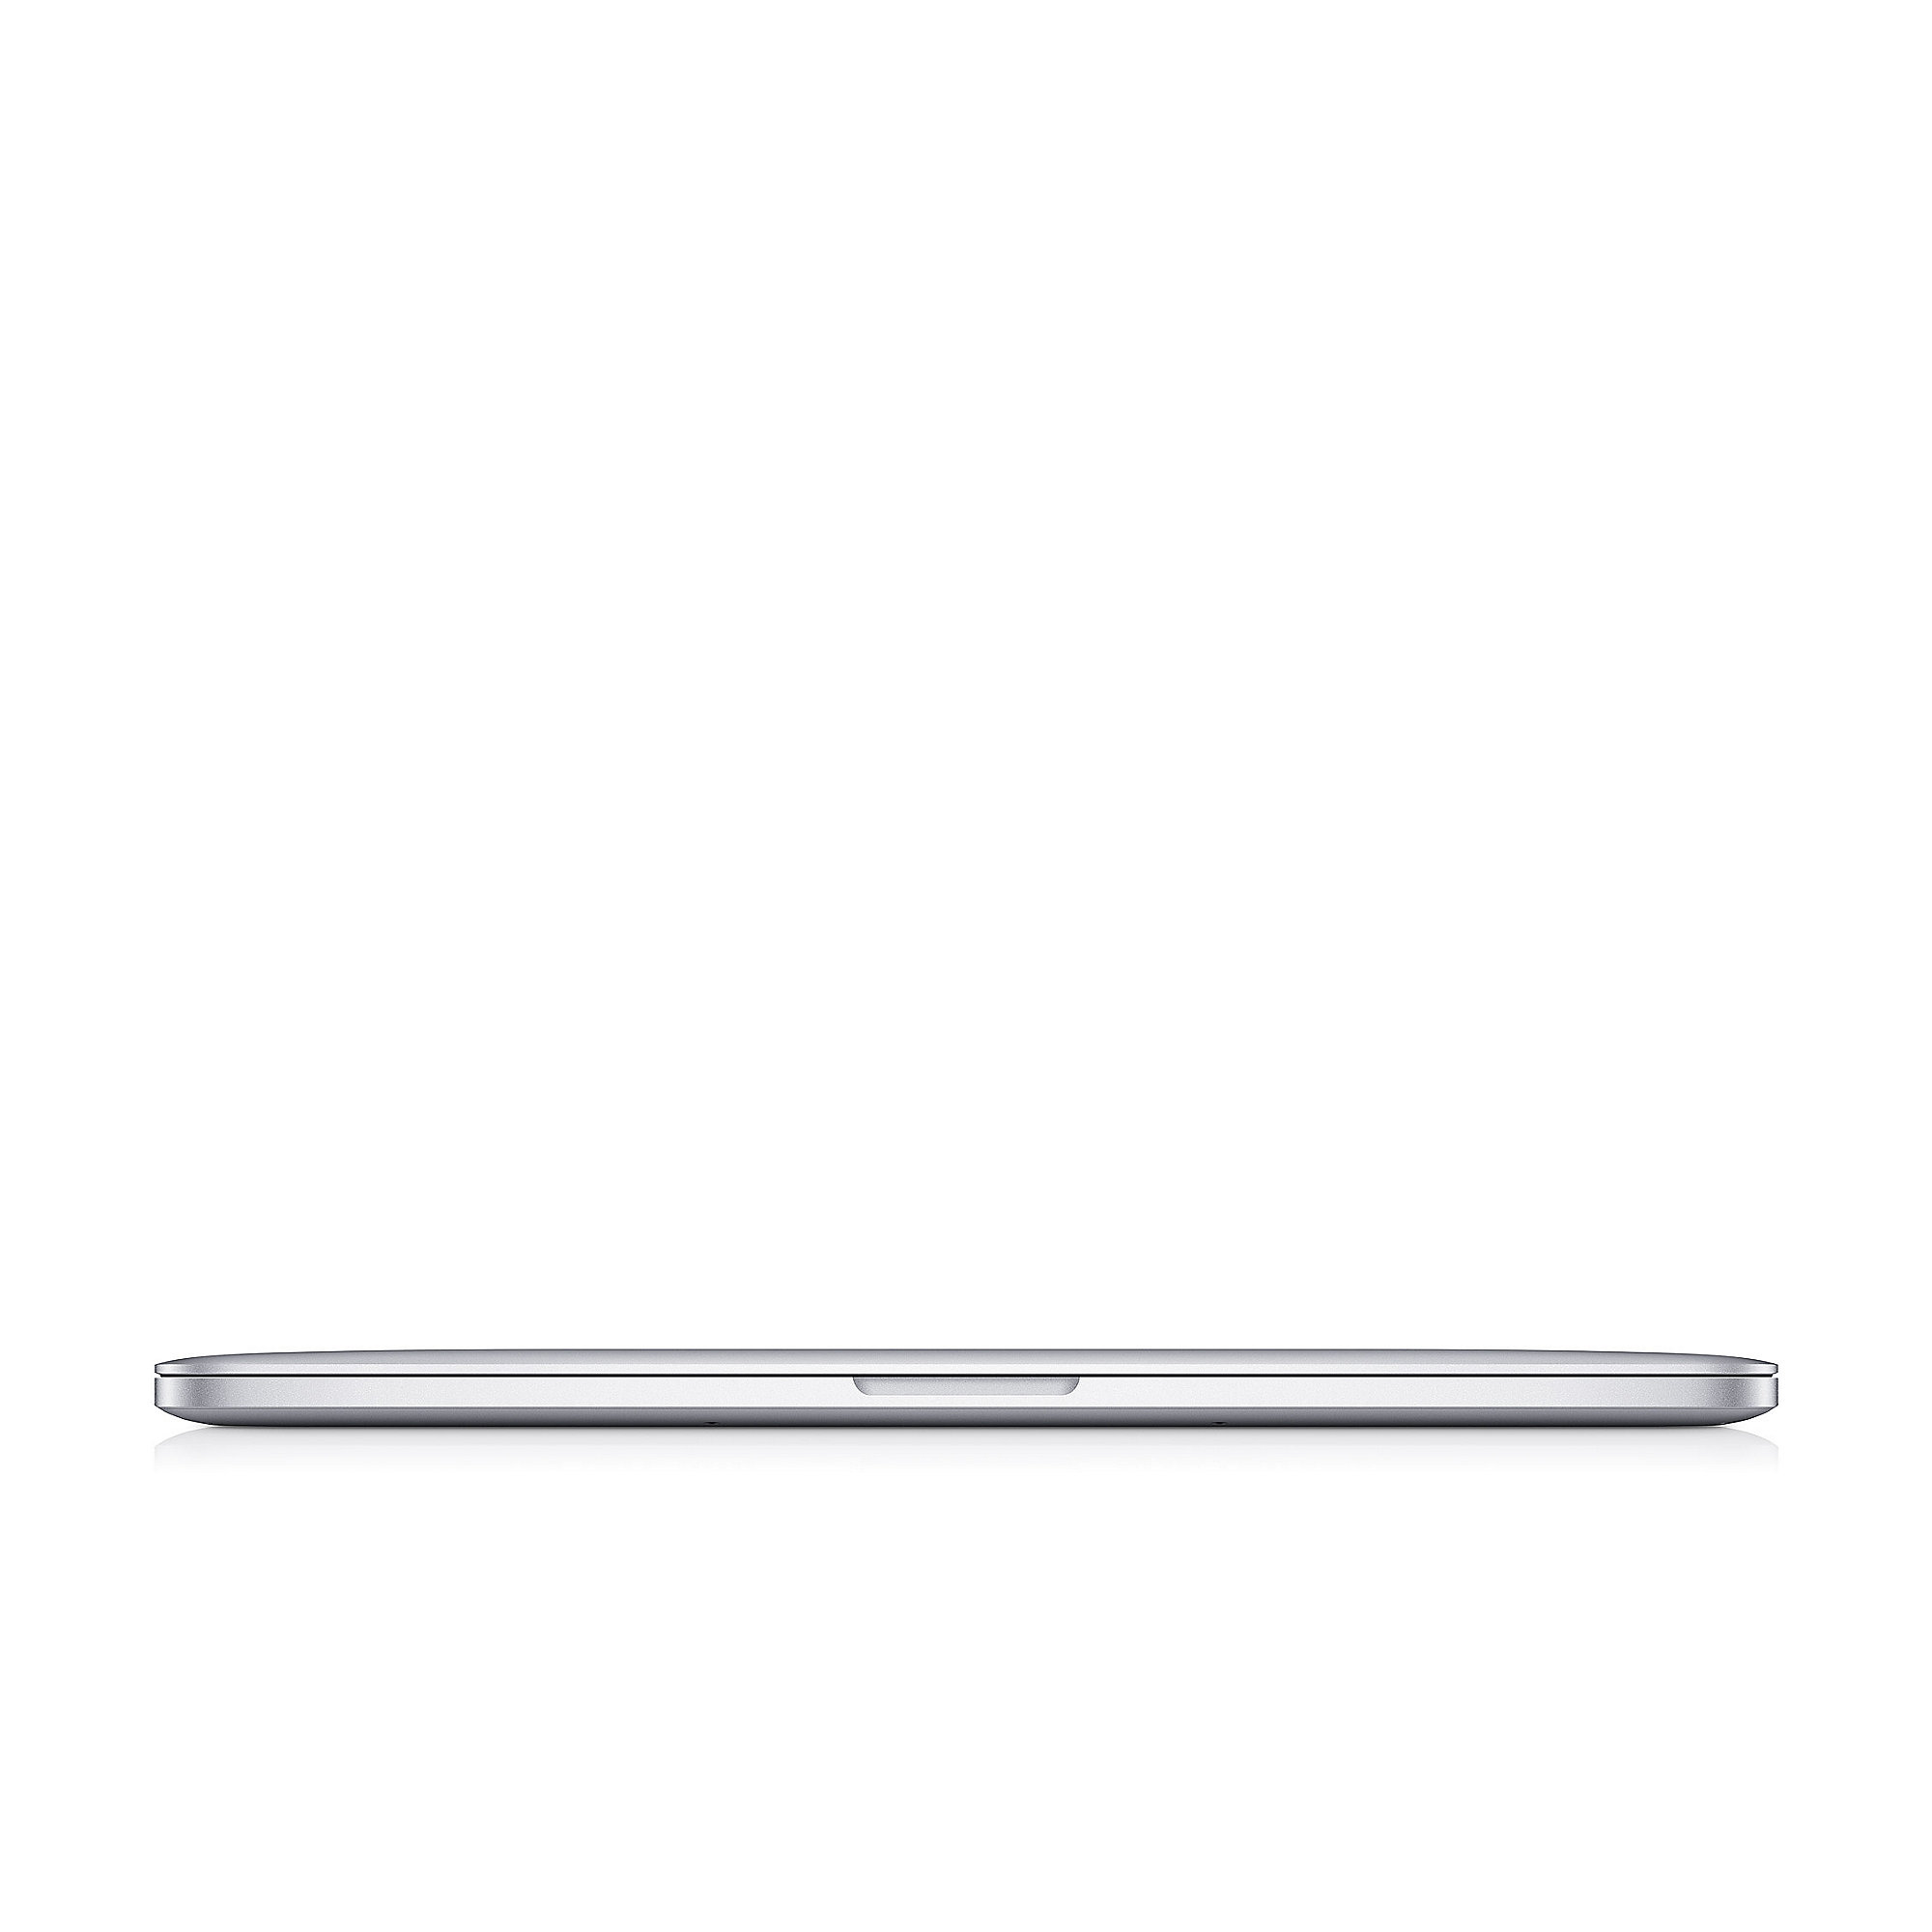 "Apple MacBook Pro 15,4"" Retina 2,8 GHz i7 16 GB 256 GB SSD IIP BTO"